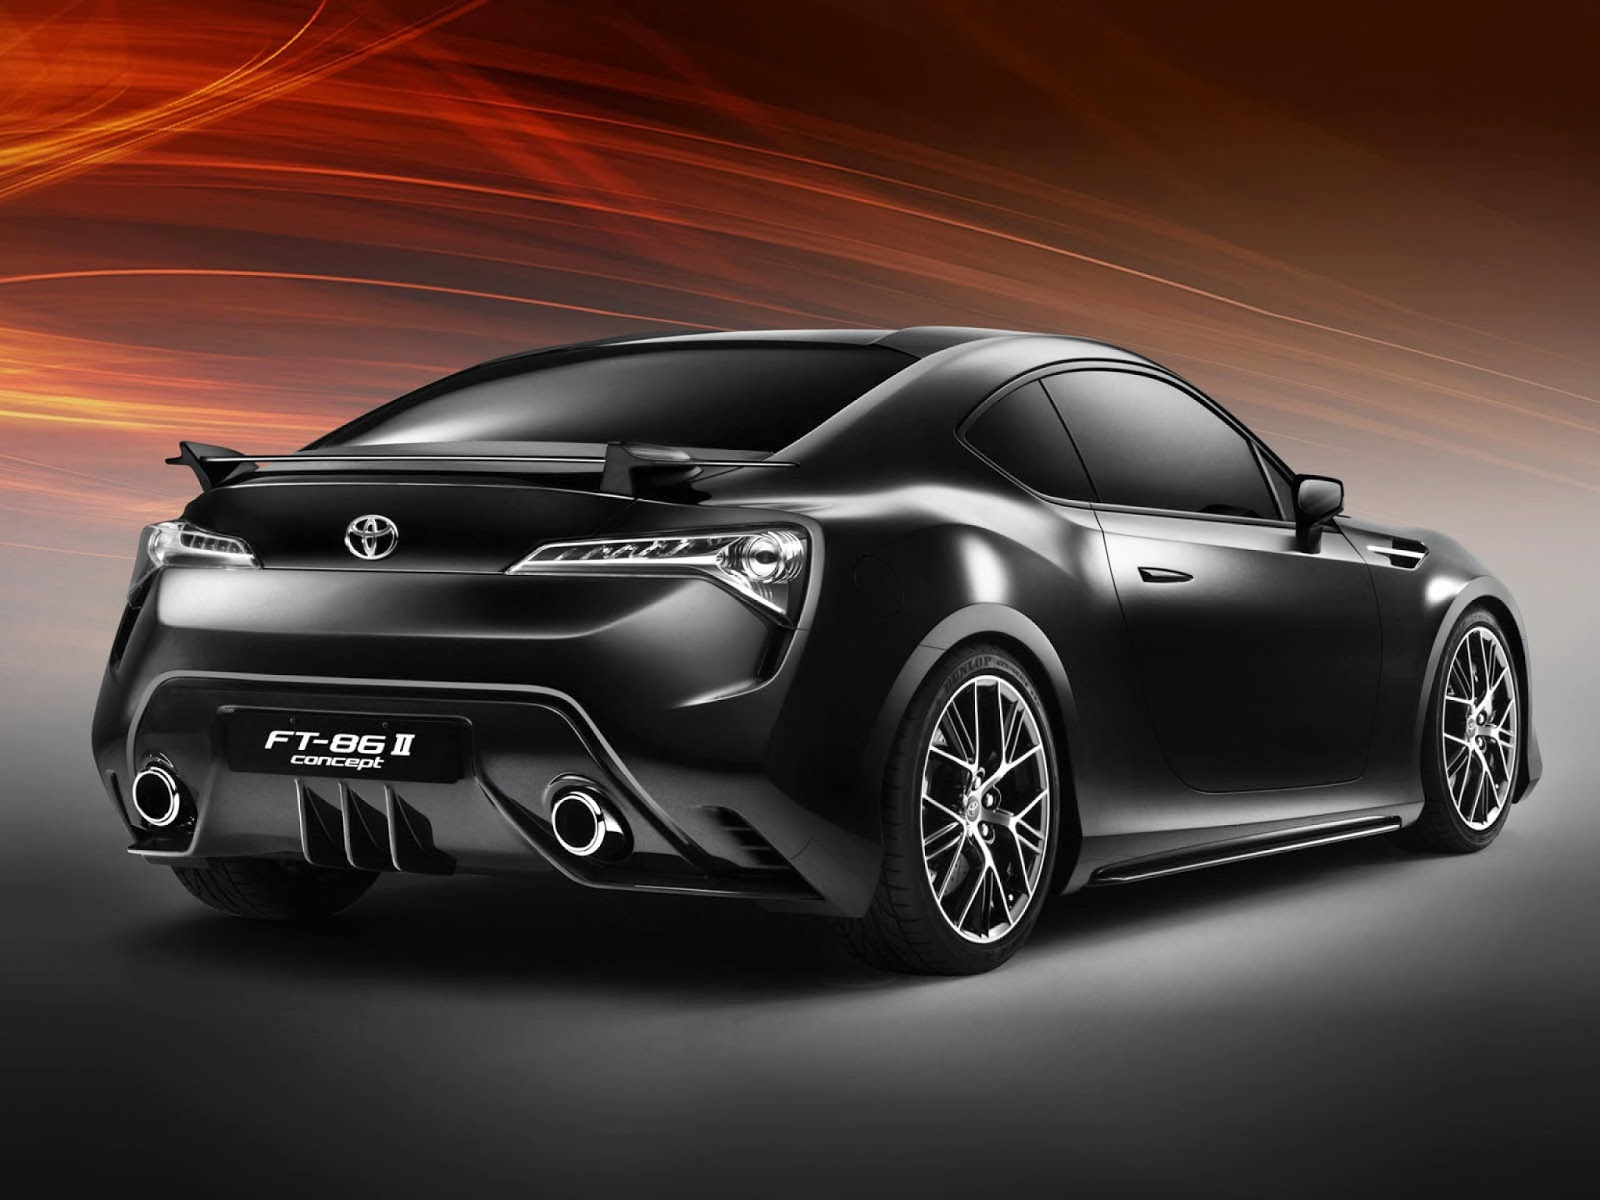 Toyota Ft86 Sport Cars Hd Wallpapers - Best Looking Affordable Sport Cars , HD Wallpaper & Backgrounds